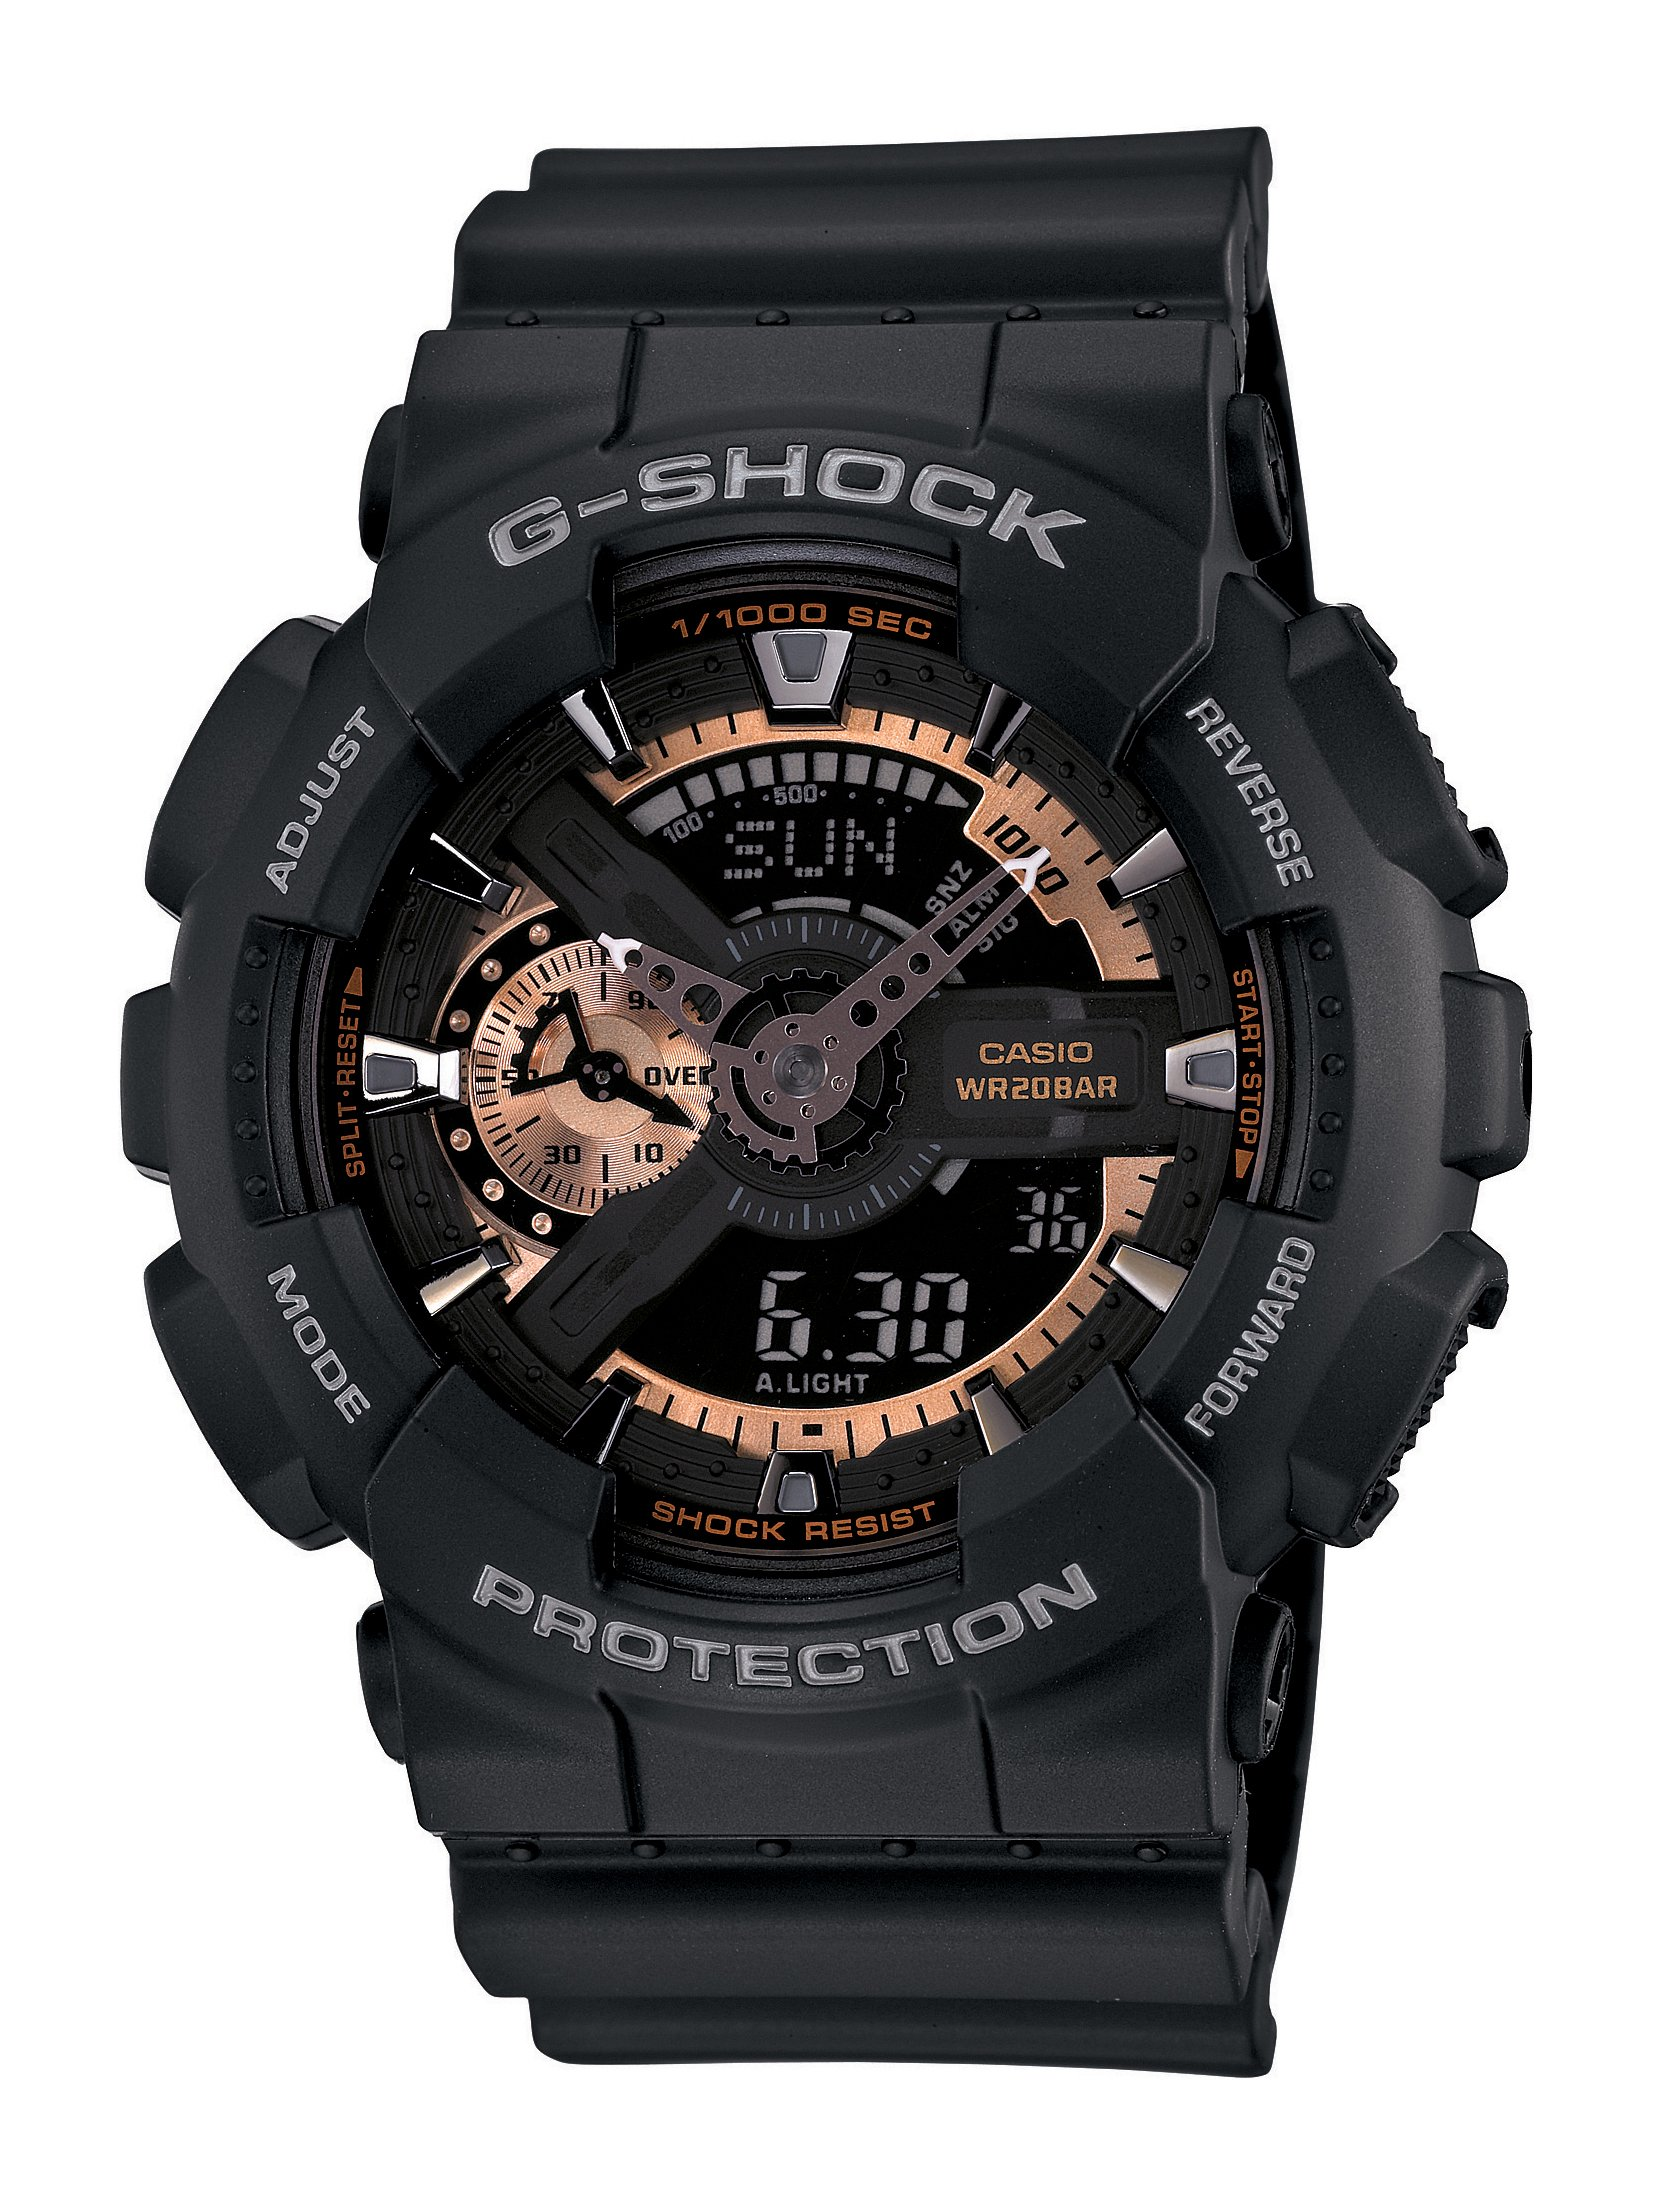 Casio Men's GA110RG-1A G-Shock Black Watch by Casio (Image #1)